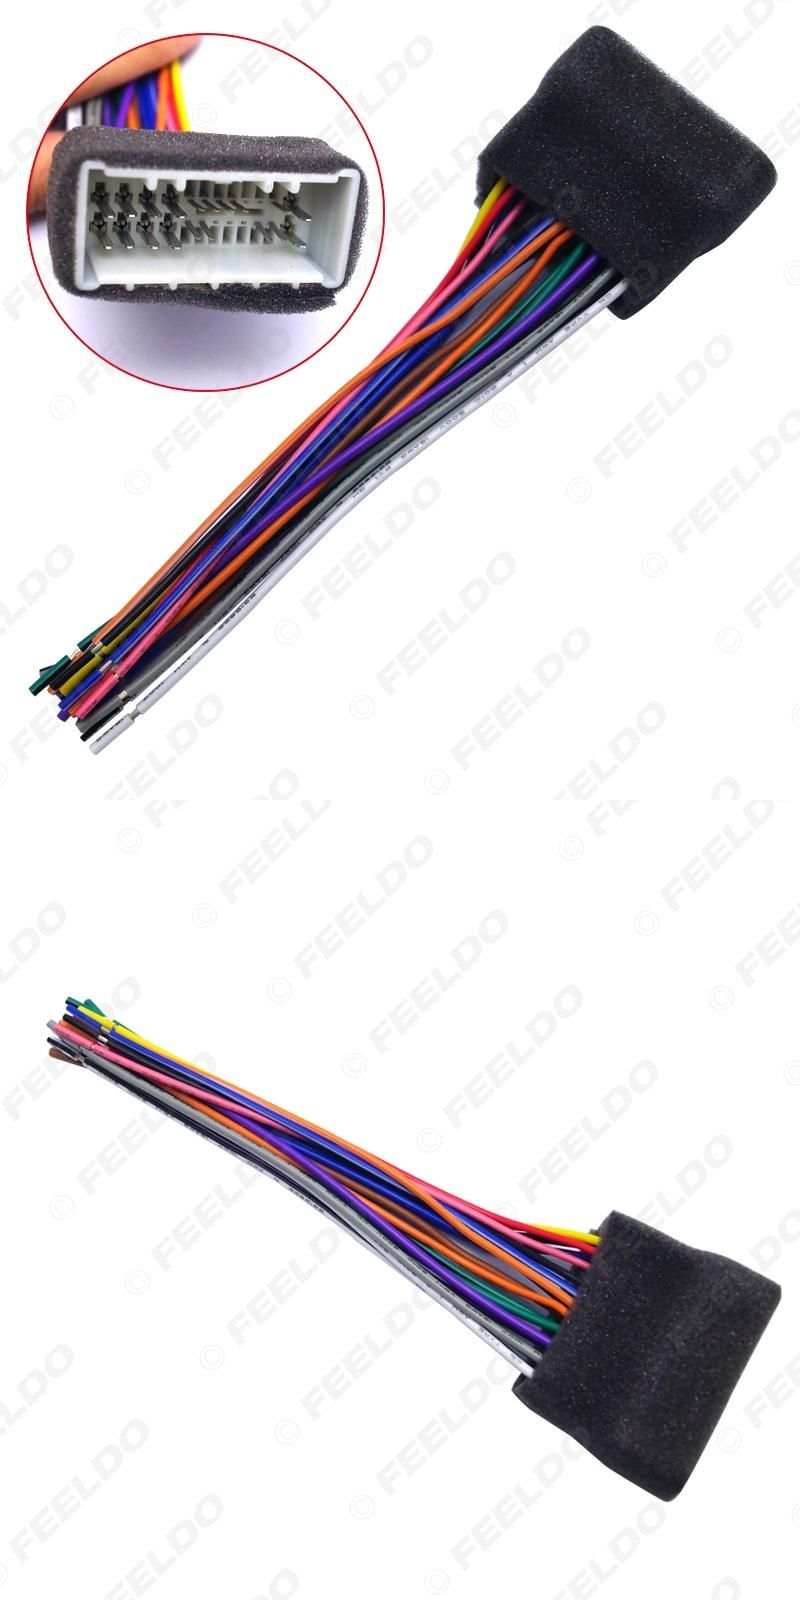 f5268a04de431732aa644afd24b0abbd visit to buy] car oem audio stereo wiring harness adapter for best buy stereo wiring harness at readyjetset.co